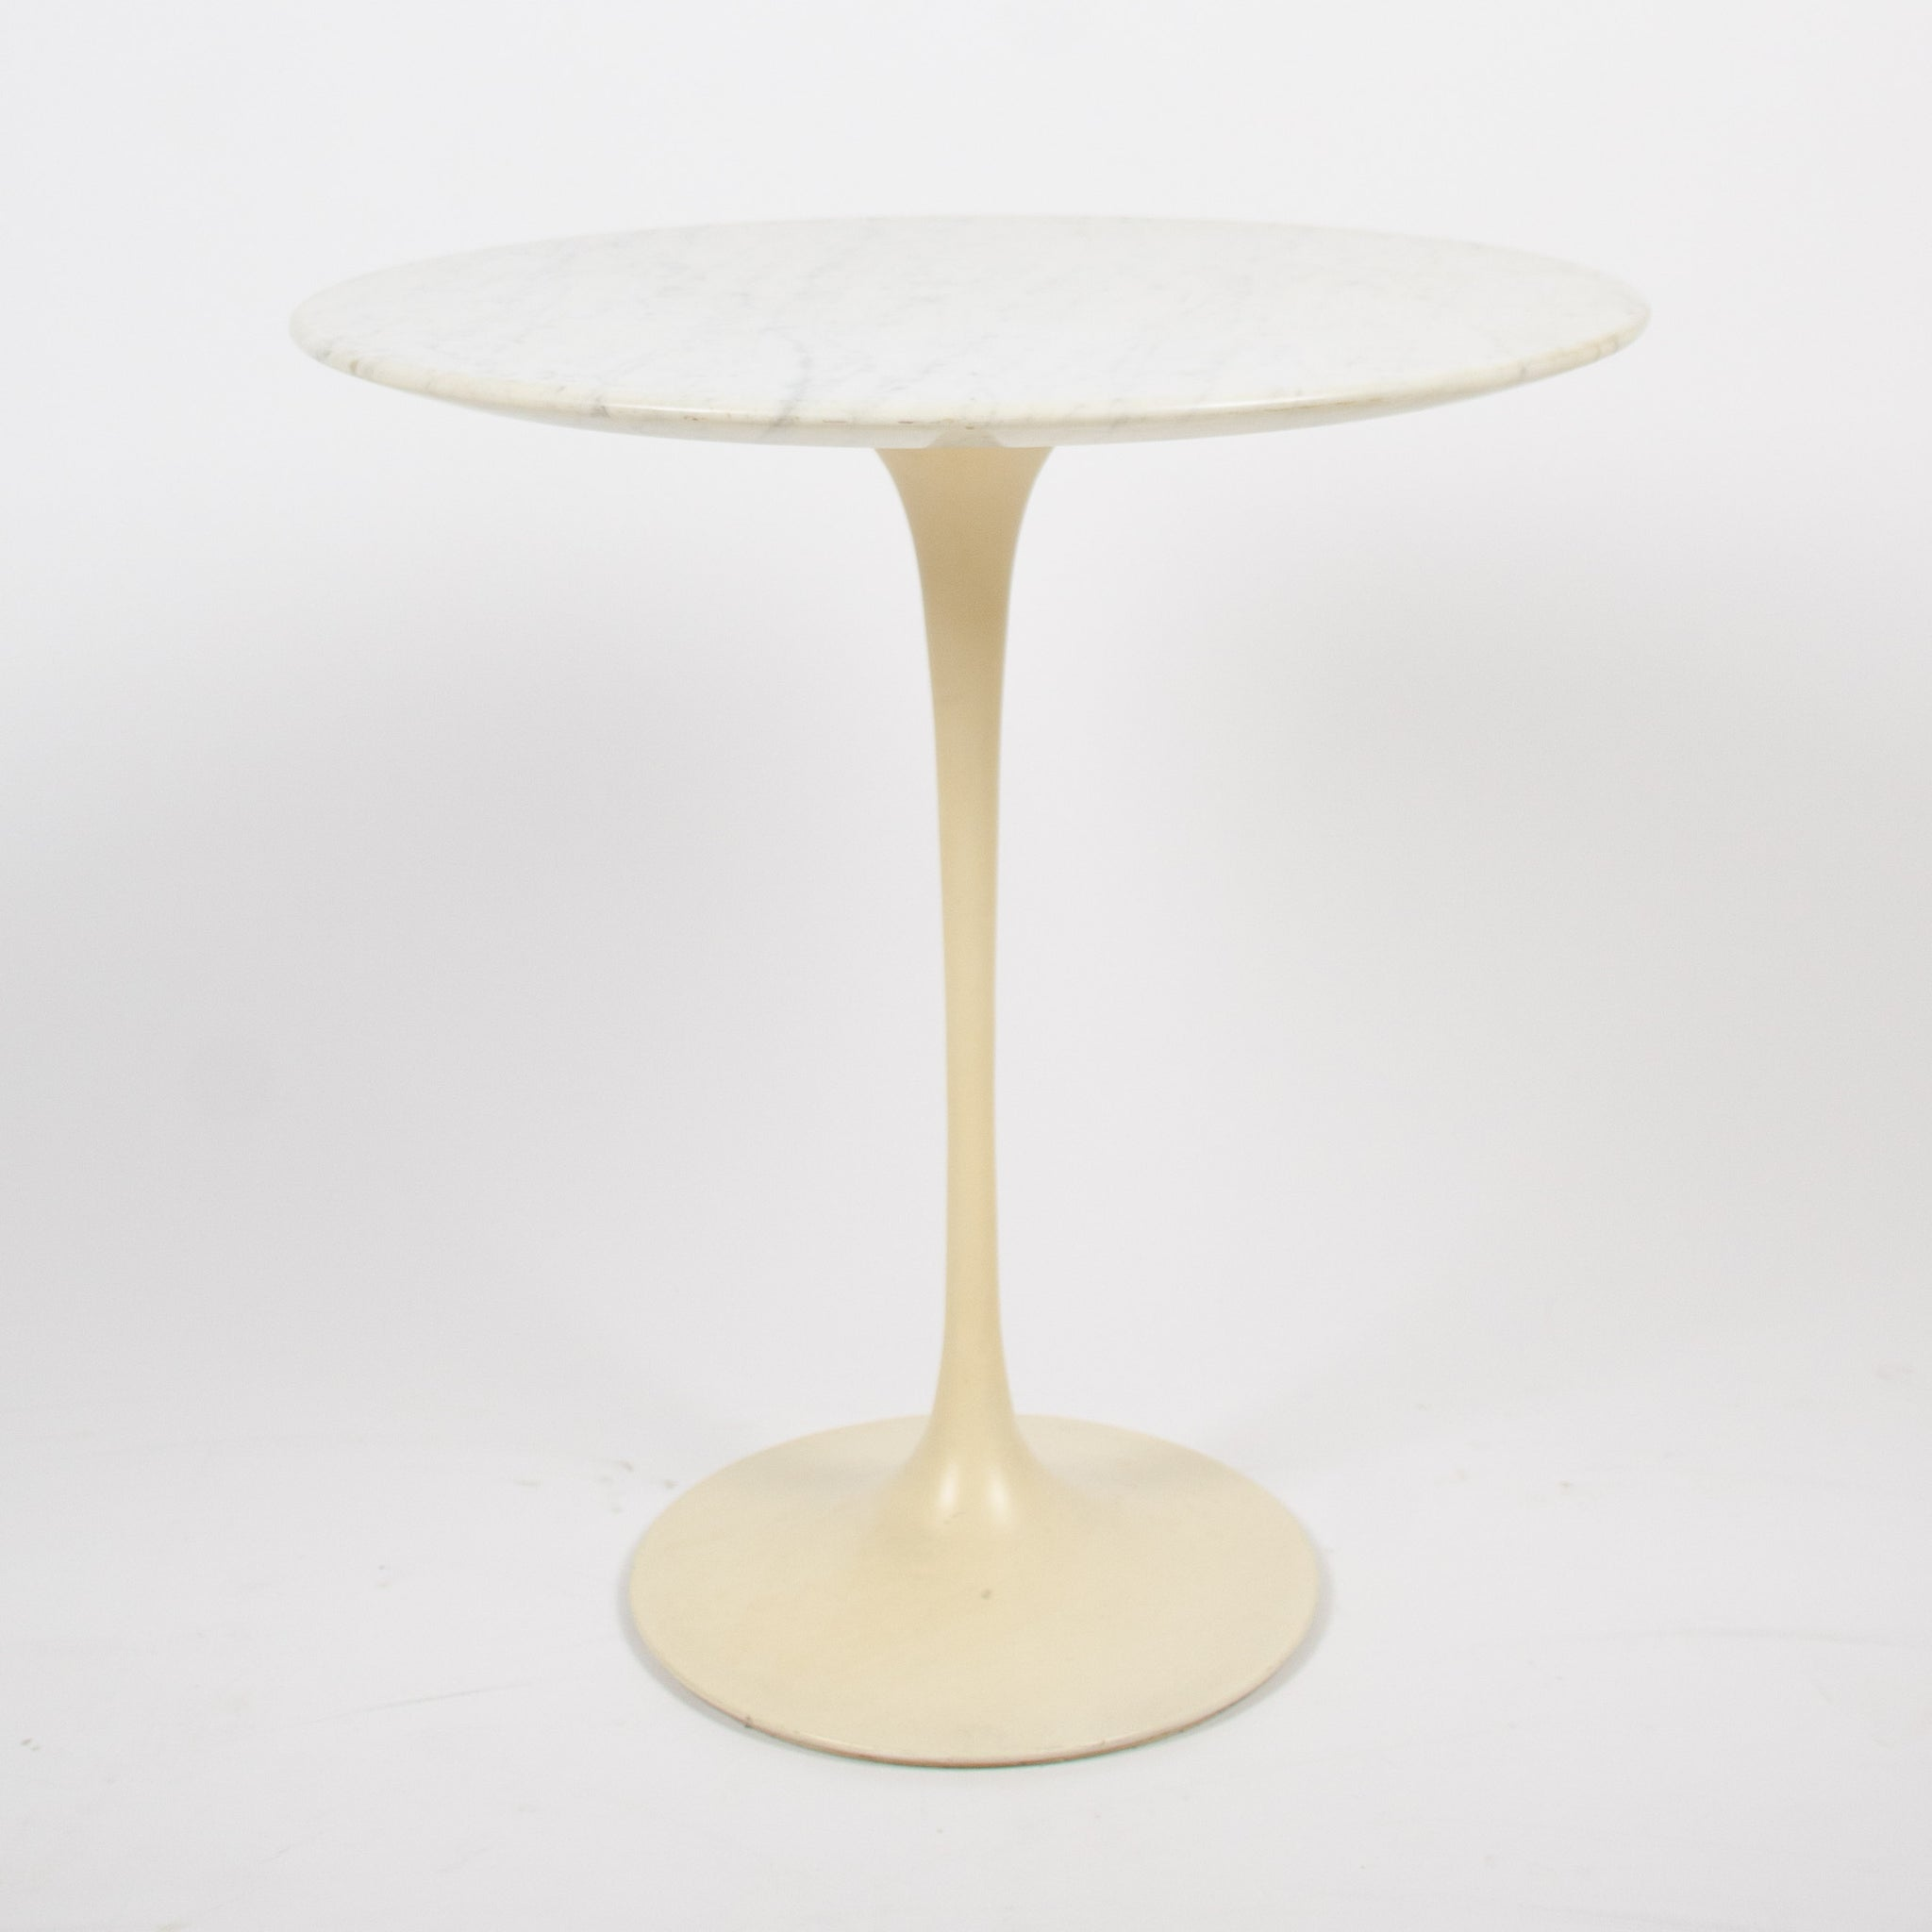 SOLD Eero Saarinen Knoll Tulip Side Table 1972 White Marble Labelled Original